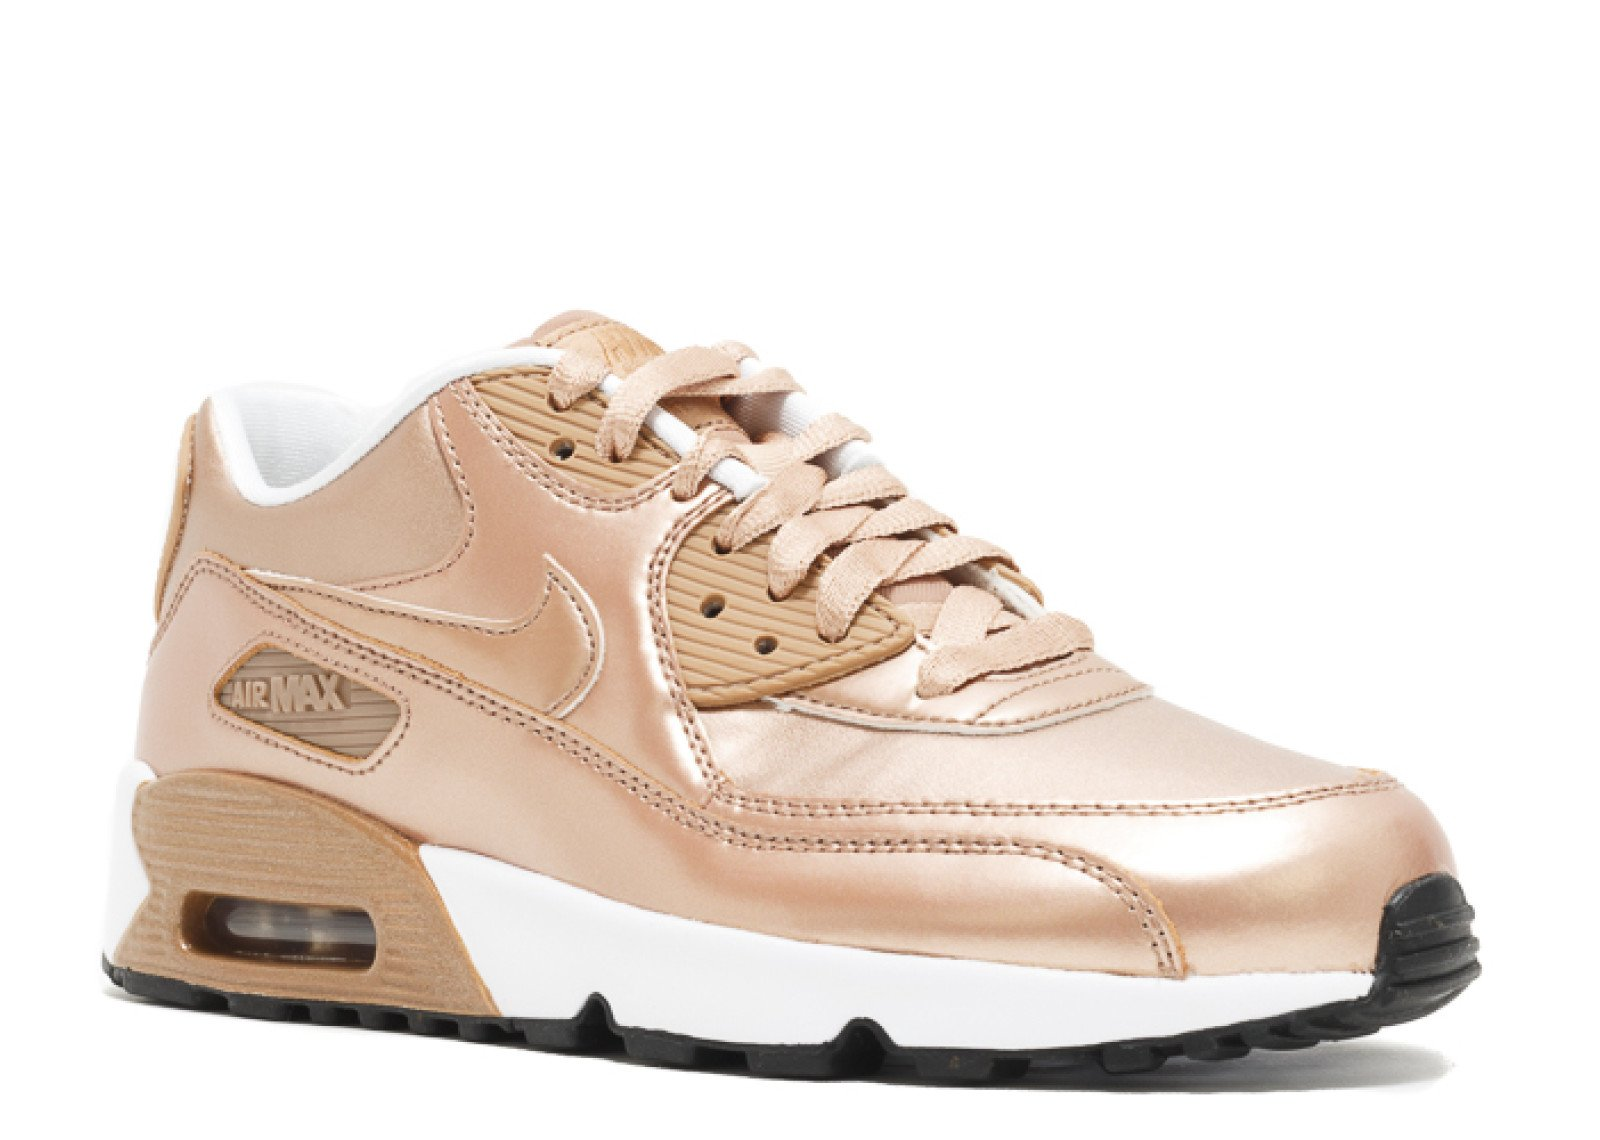 Galleon - NIKE Air Max 90 SE Big Kids Leather Metallic Red Bronze  859633-900 (Size  5.5Y) cb0fd95c6f87c